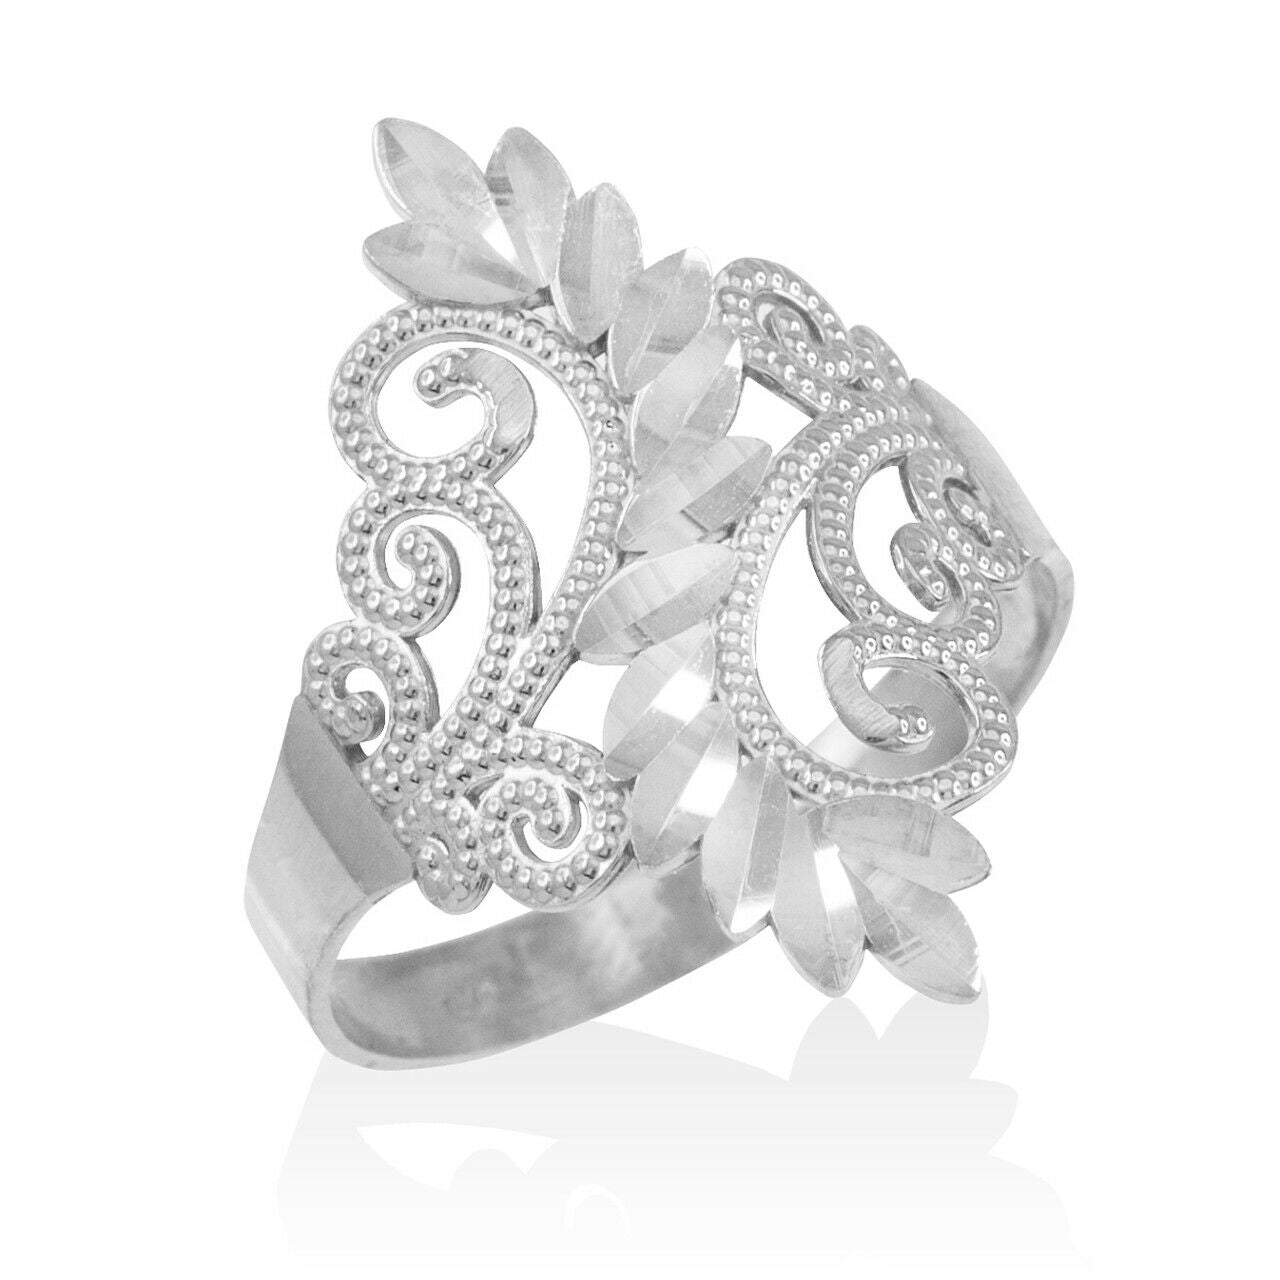 925 Sterling Silver Filigree Diamond Cut Ring - Any/All Sizes Made in USA